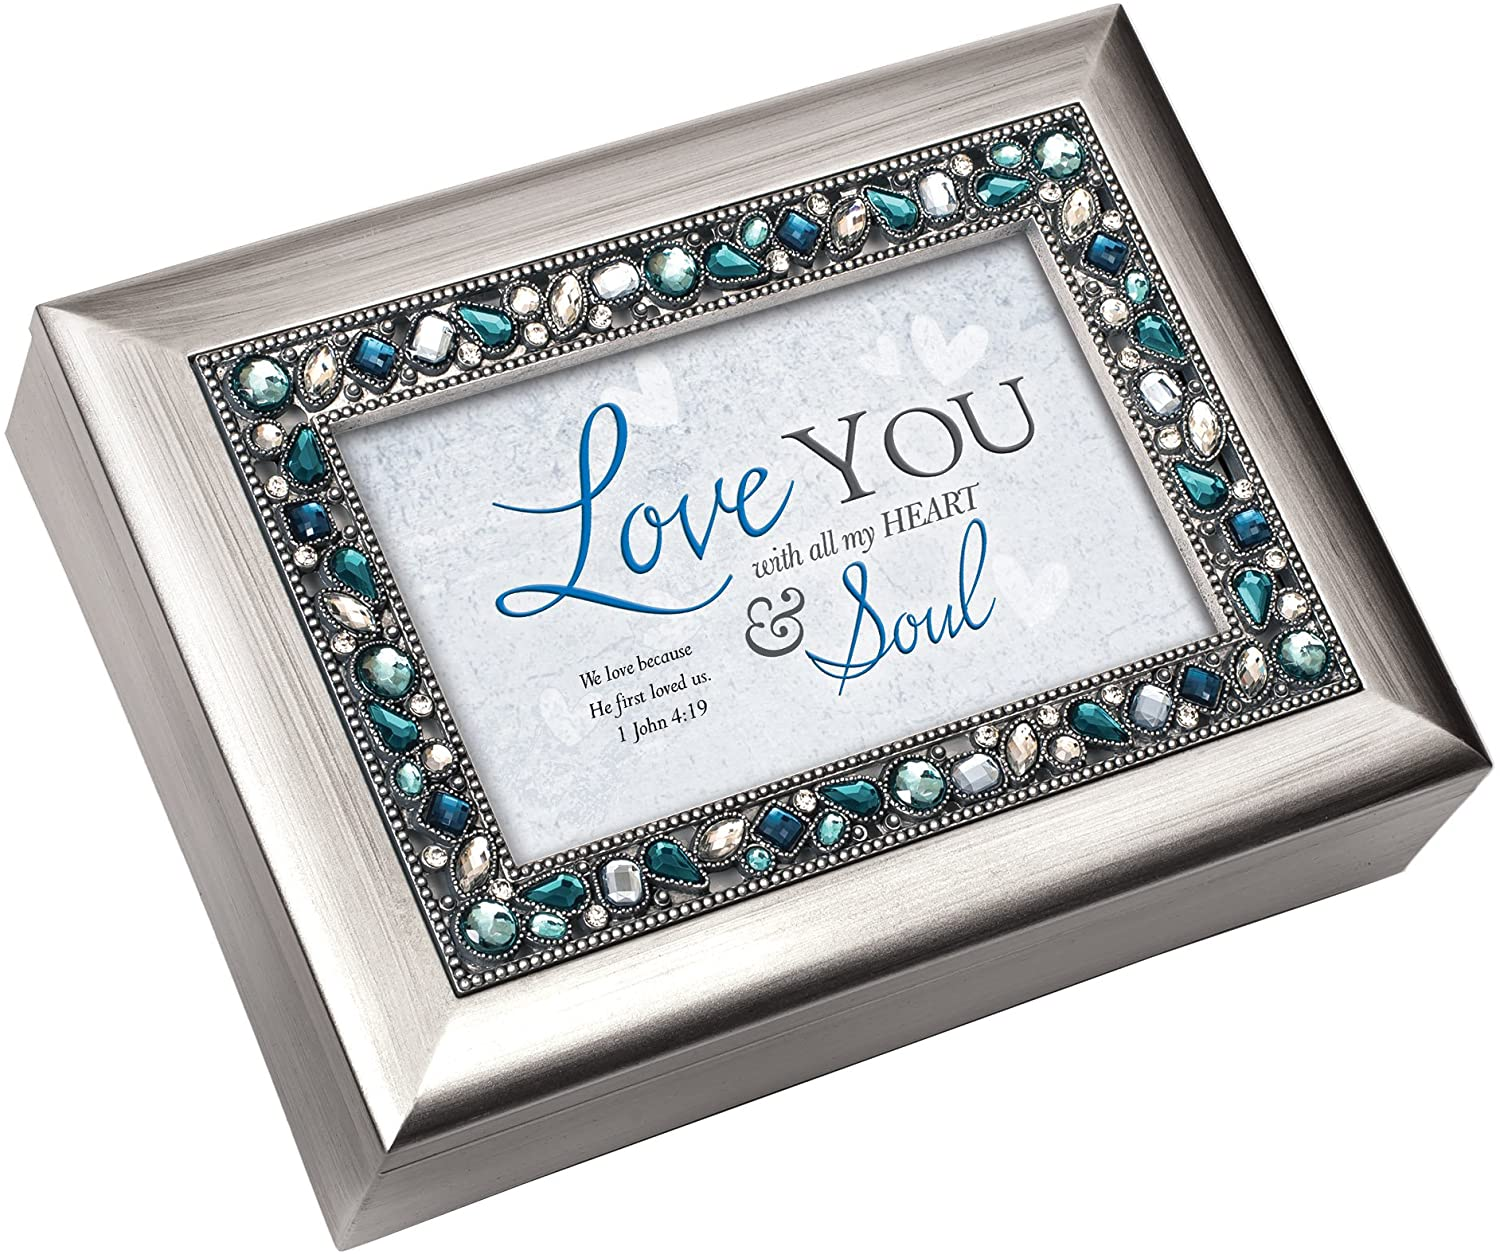 Cottage Garden Love You with All My Heart Brushed Silvertone Jewelry Music Box Plays Amazing Grace